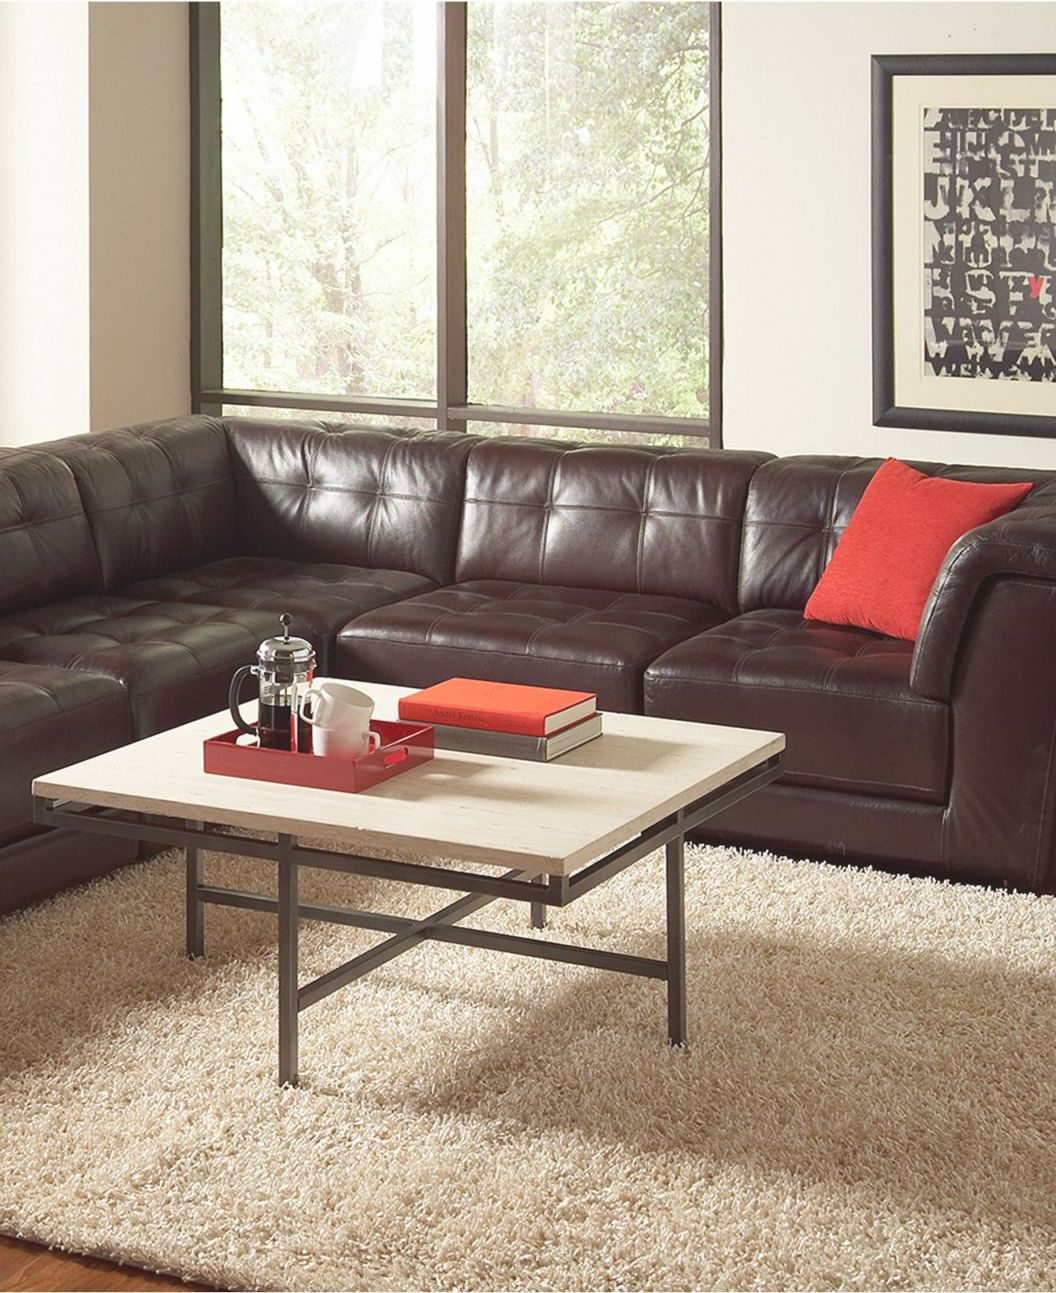 6 piece modular sectional sofa